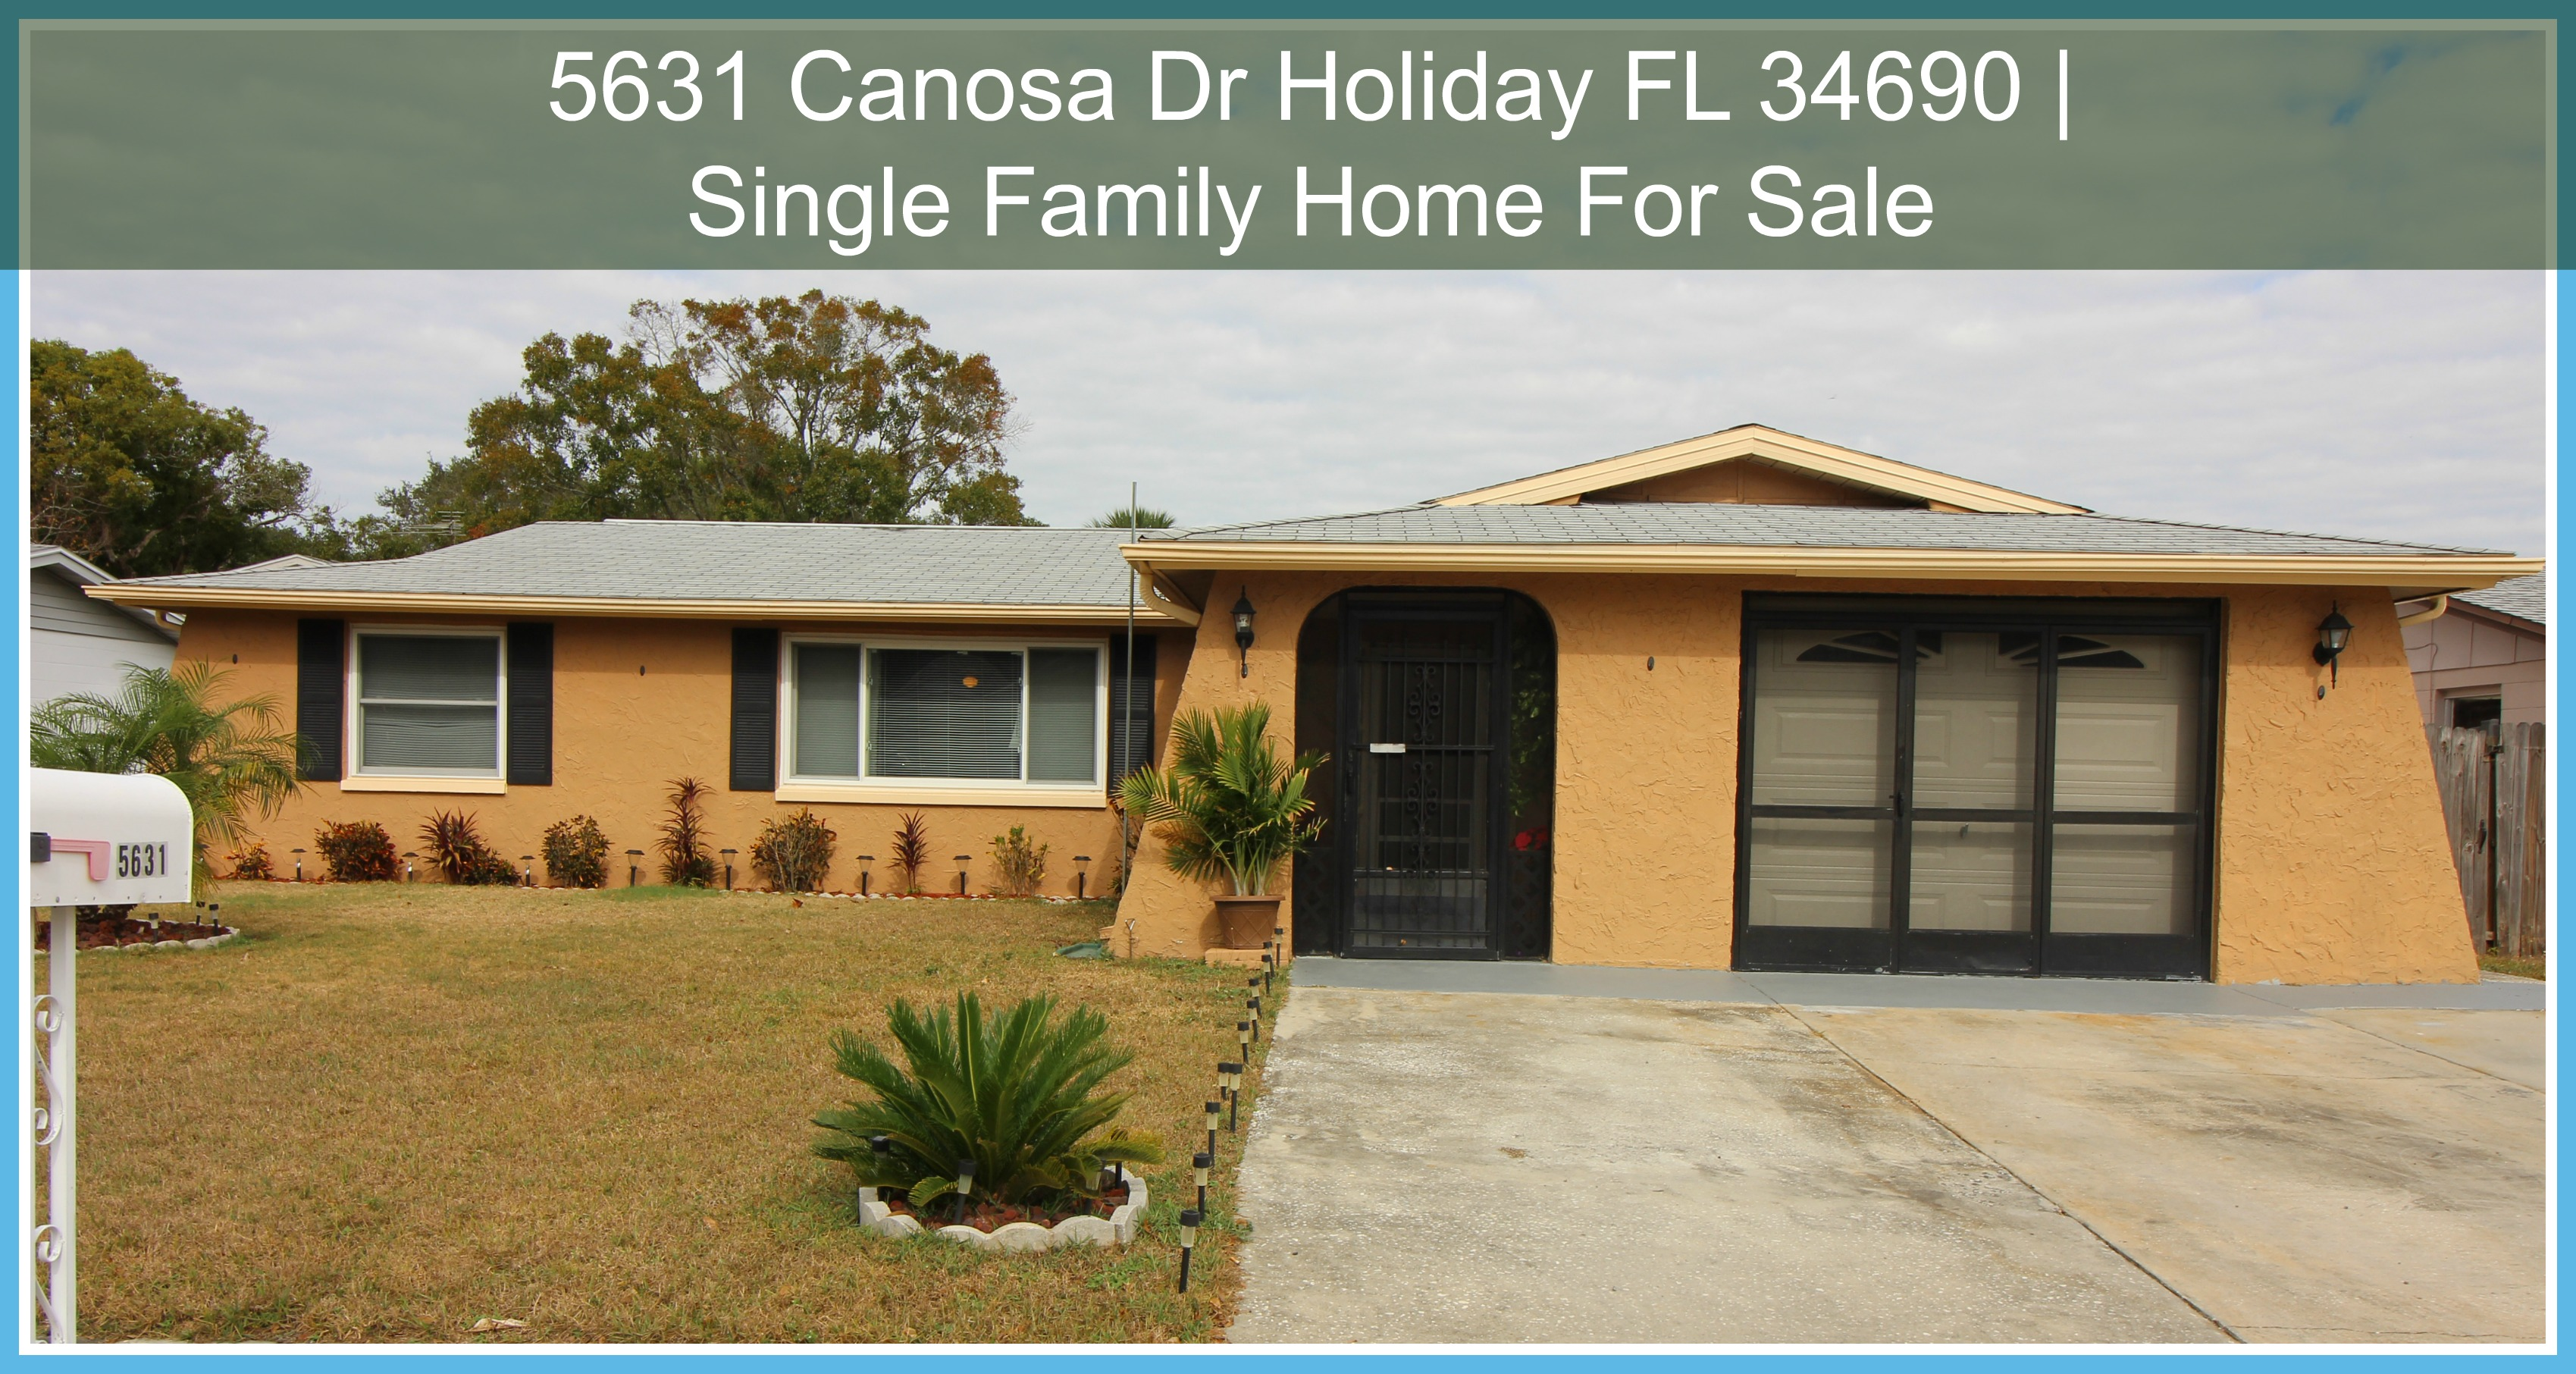 under contract 5631 canosa dr holiday fl home for sa